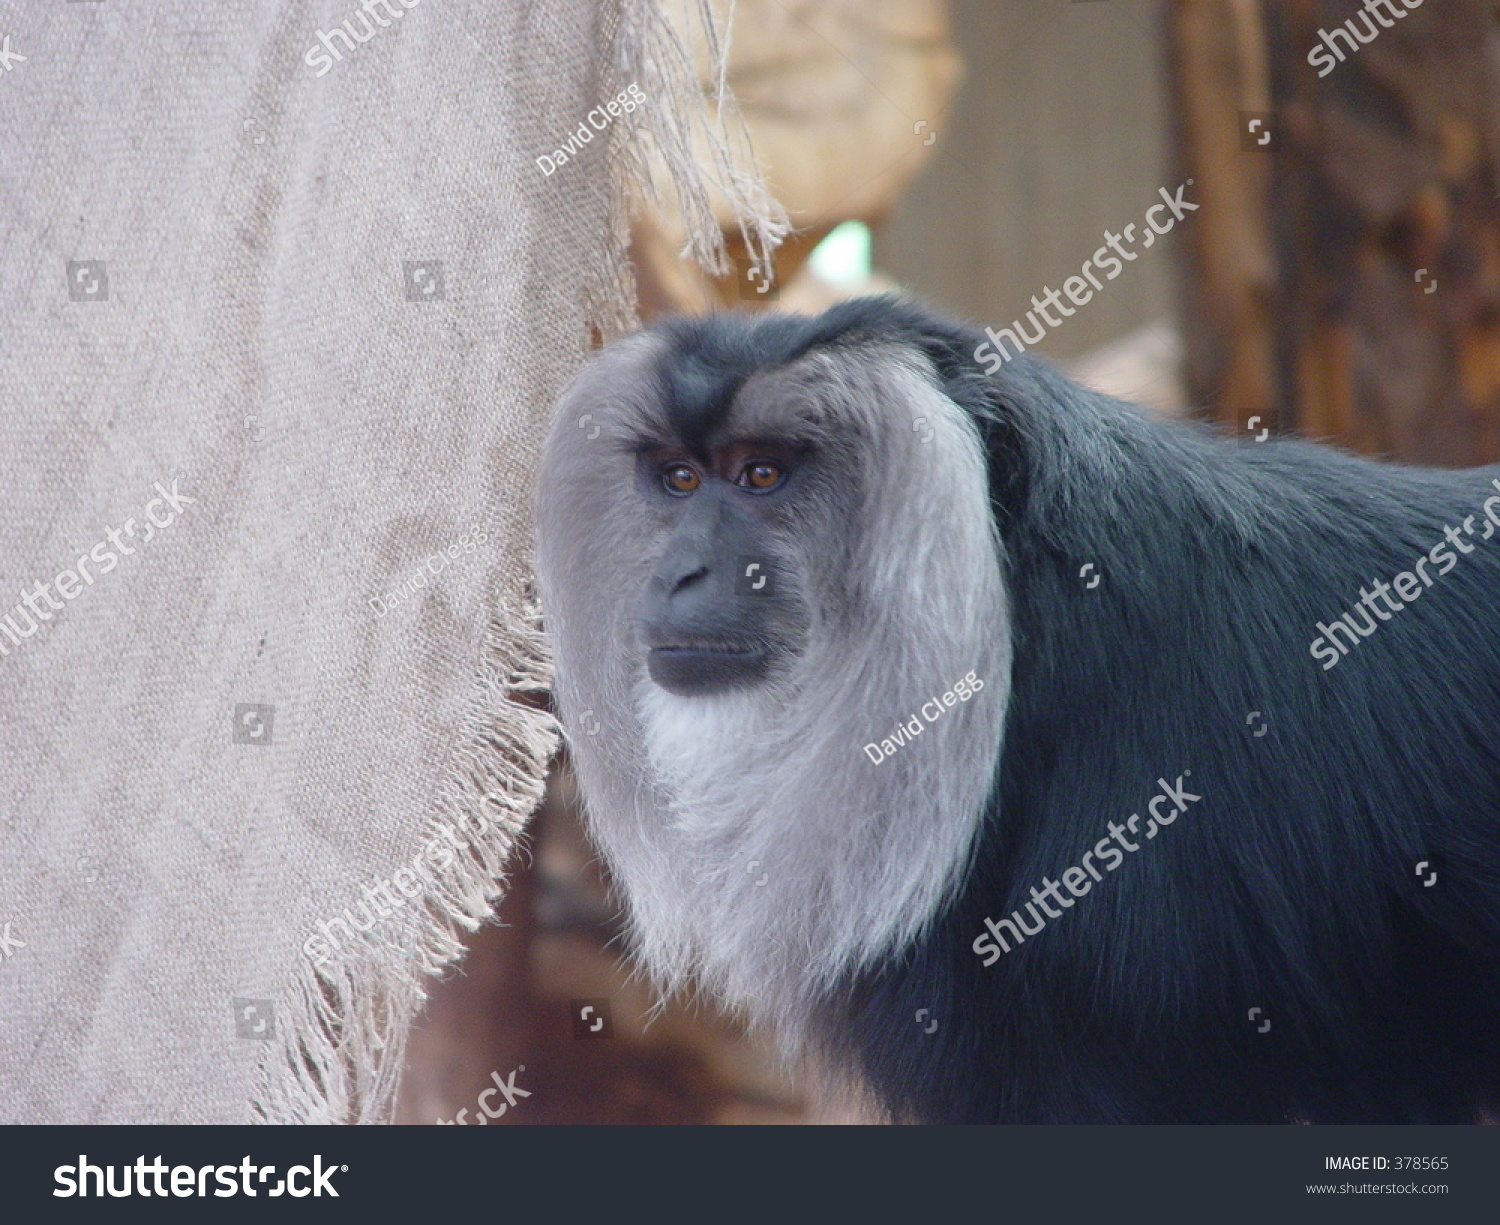 Beardy Monkey: White Bearded Monkey Stock Photo 378565 : Shutterstock